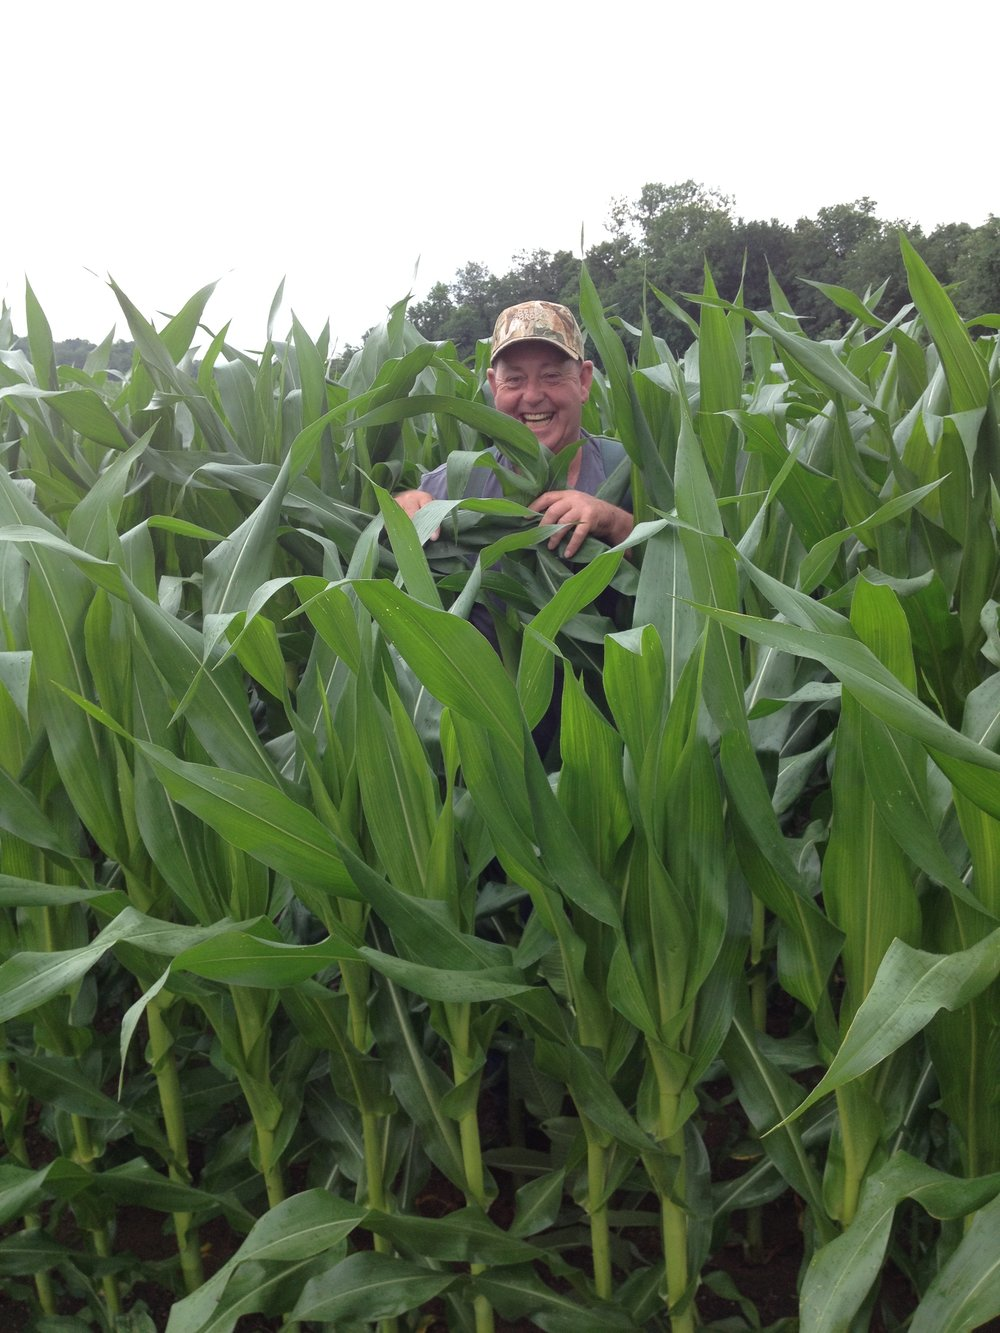 Donnie Richards standing in a healthy field of corn.